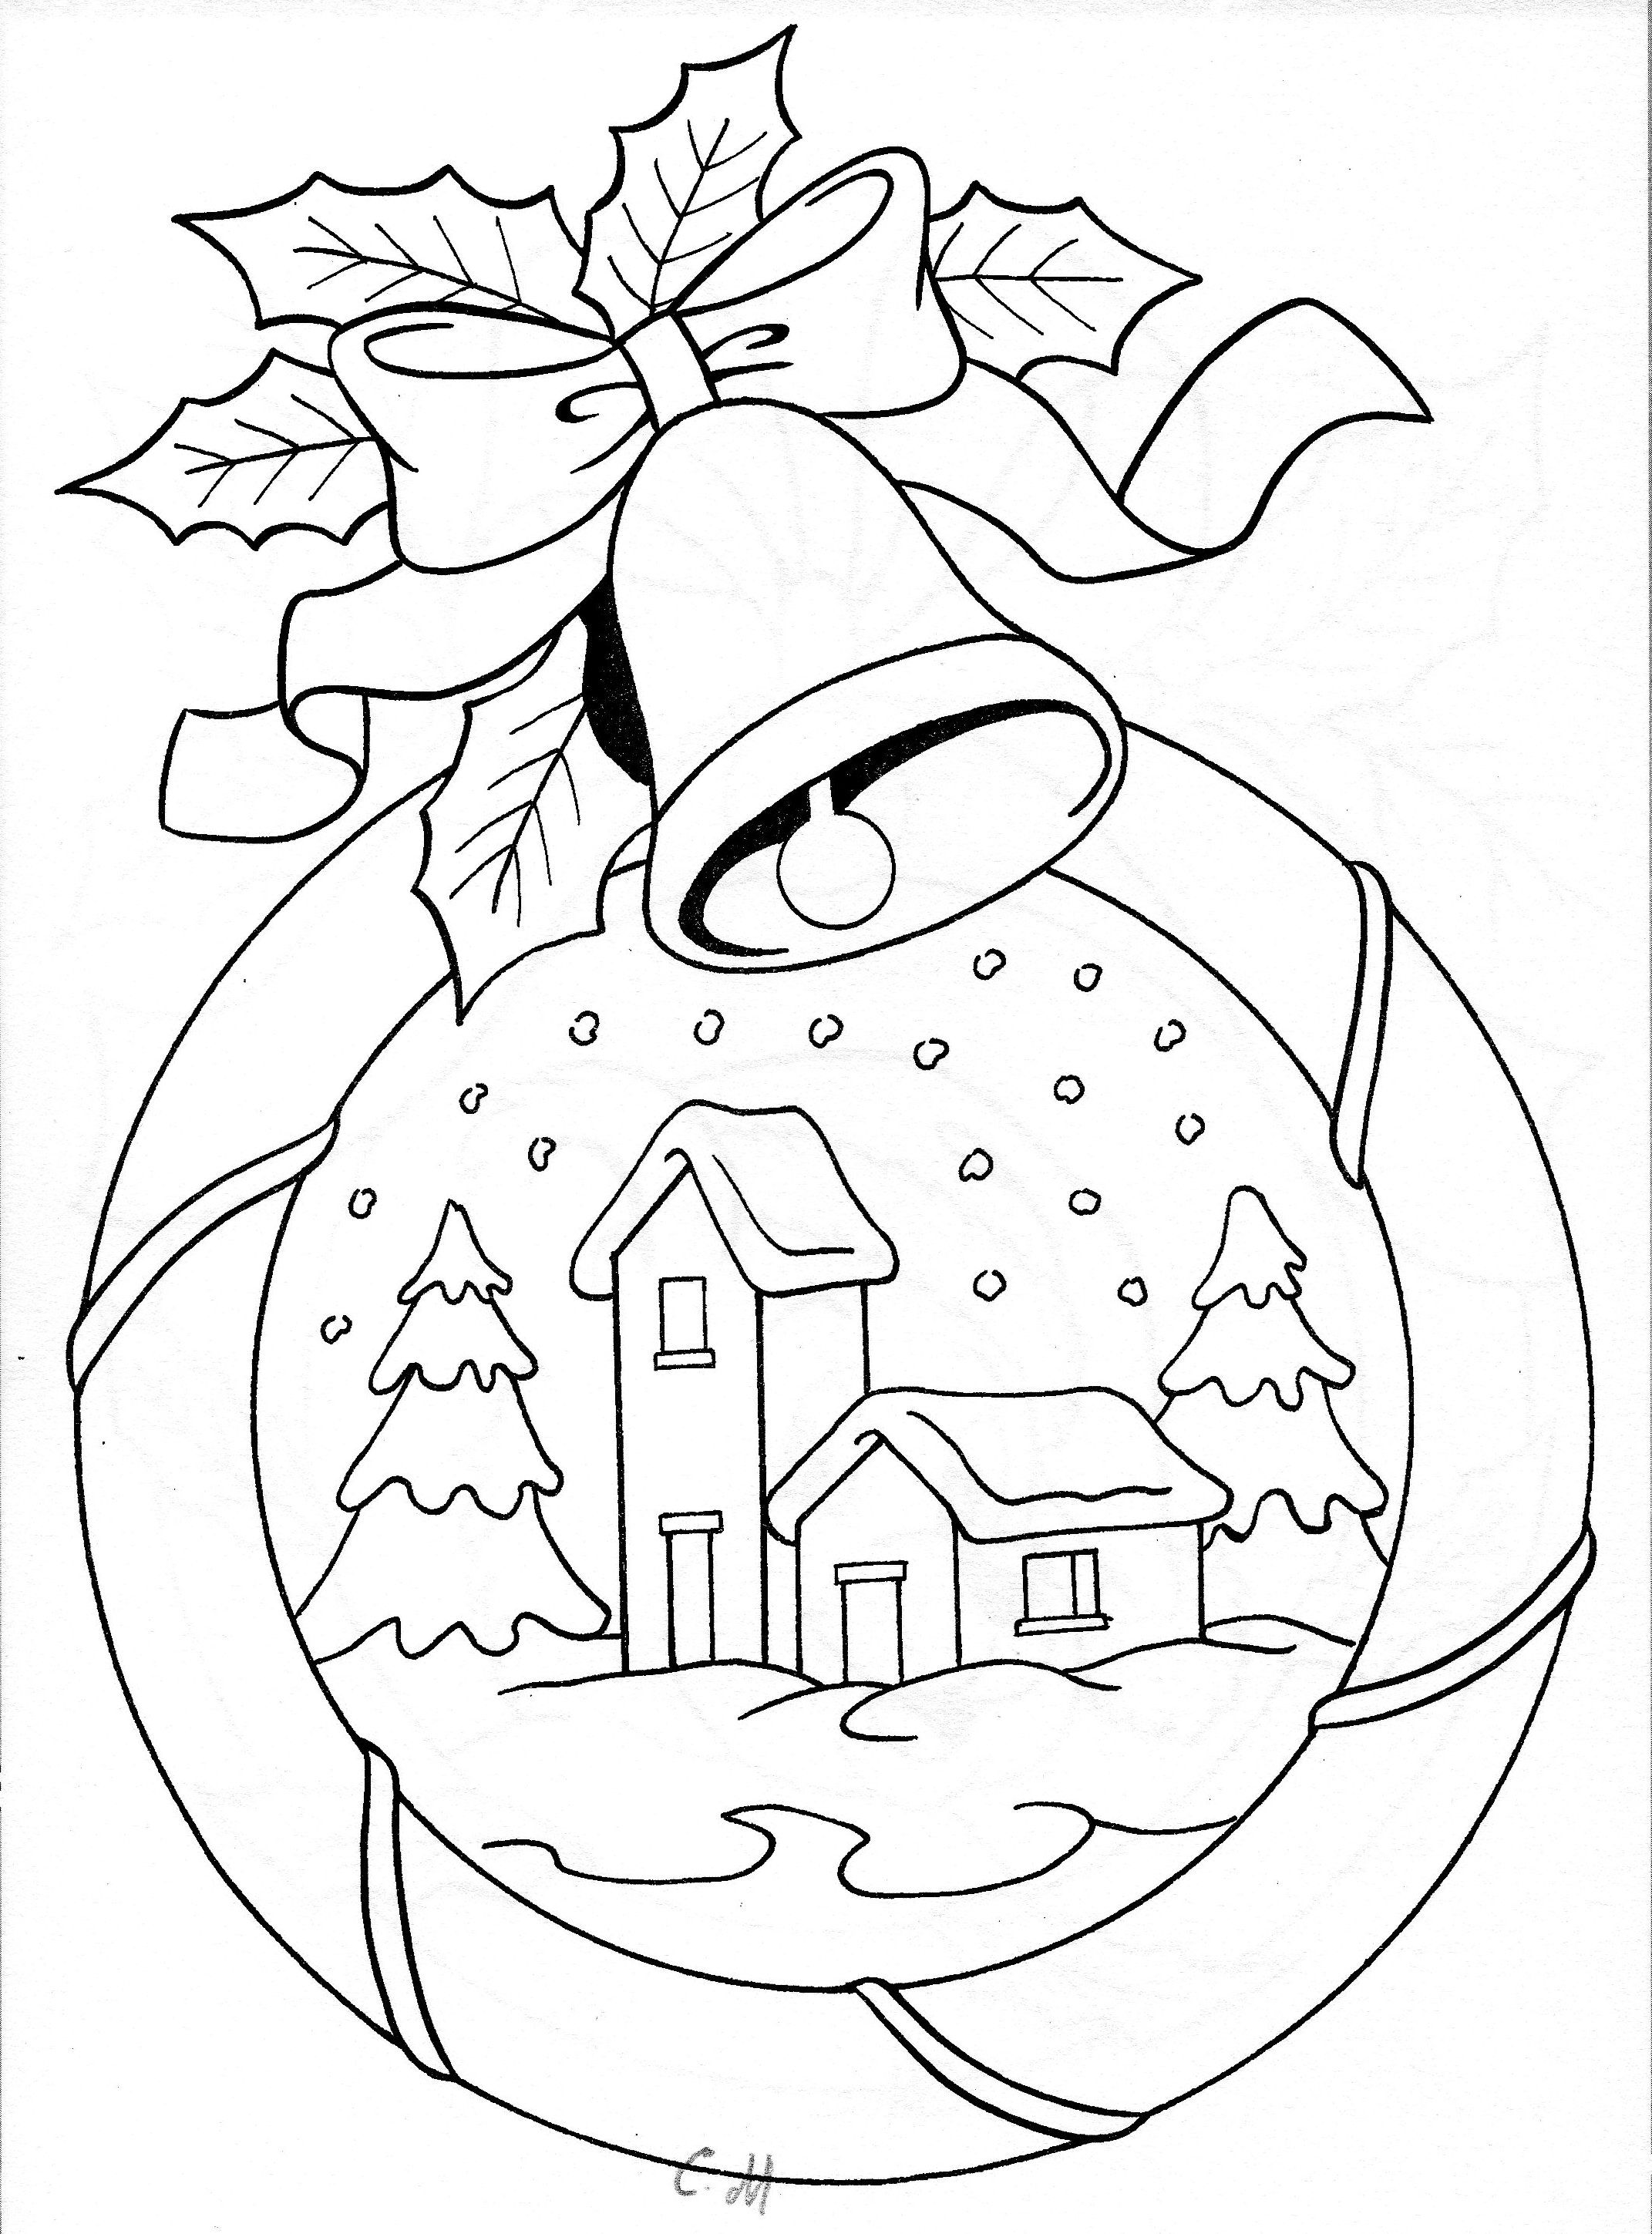 Christmas snowy scene embroidery | CUTWORK embroidery | Pinterest ...